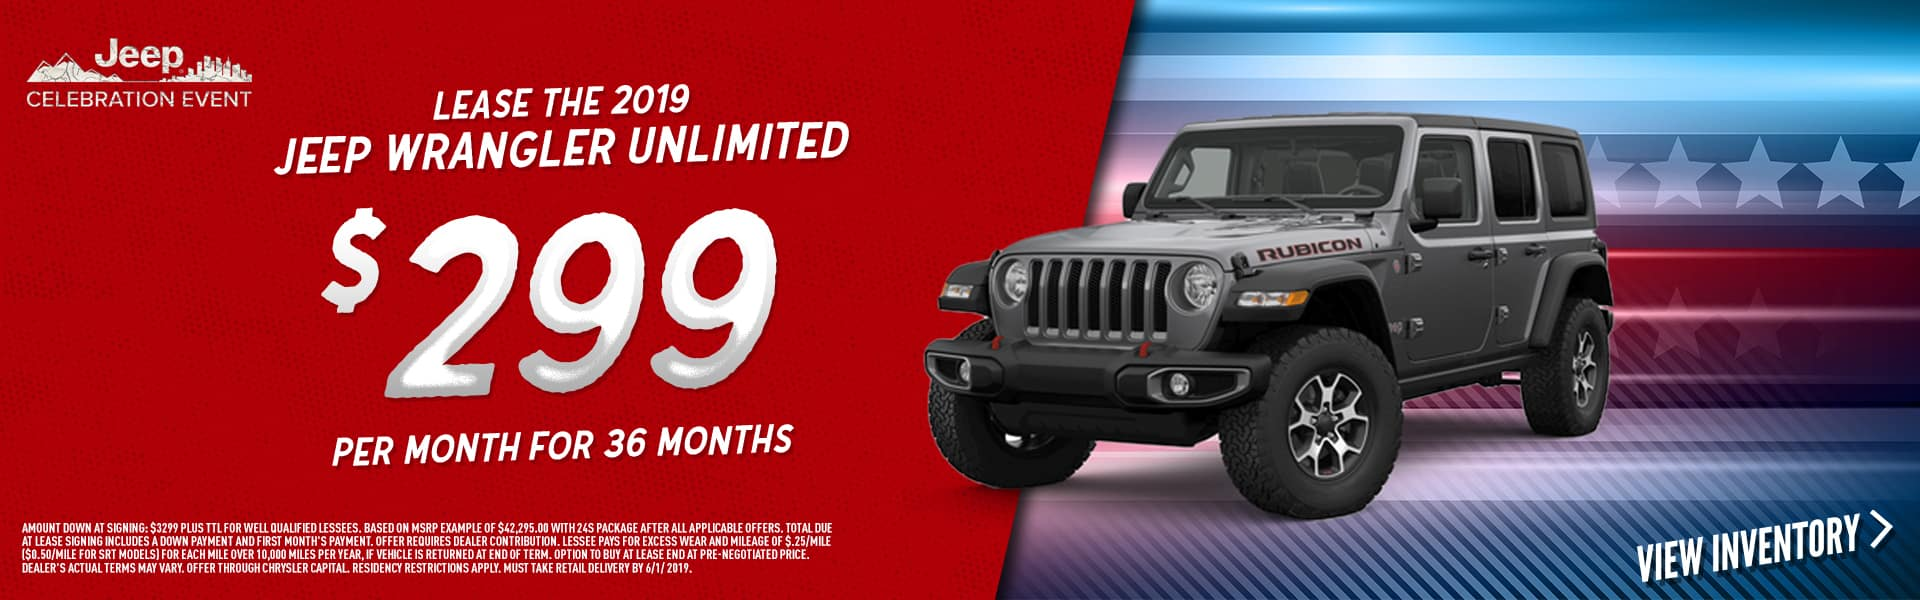 lease-2019-jeep-wrangler-unlimited-beaumont